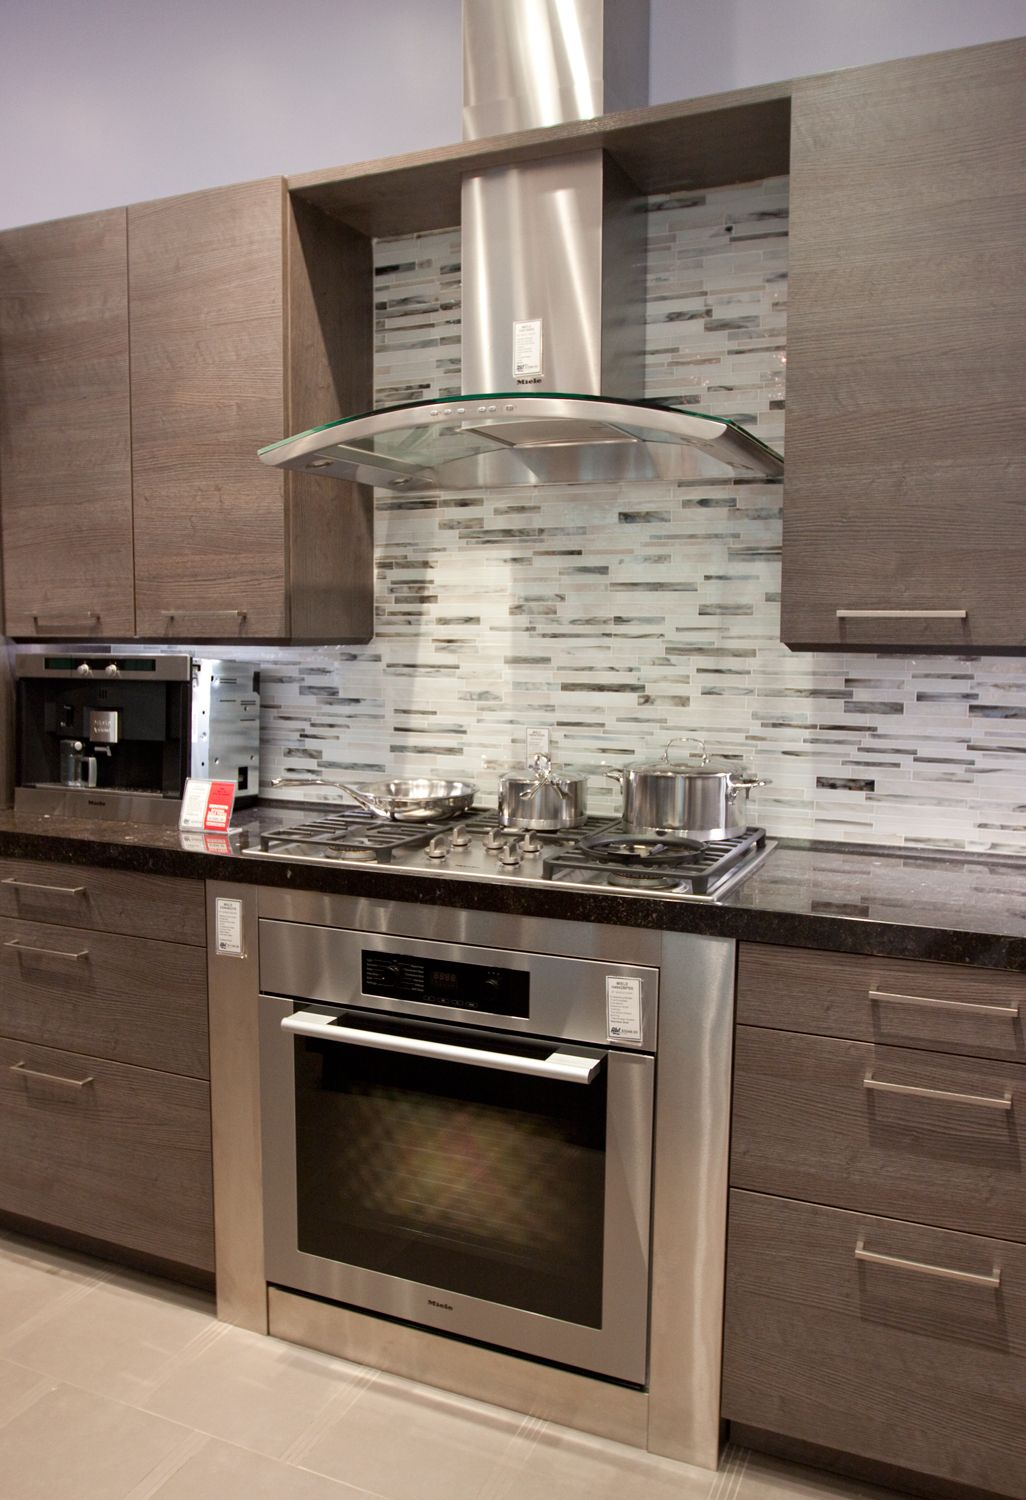 Chimney Hoods For Kitchens ~ Kitchen glass chimney hood gray backsplash decoration